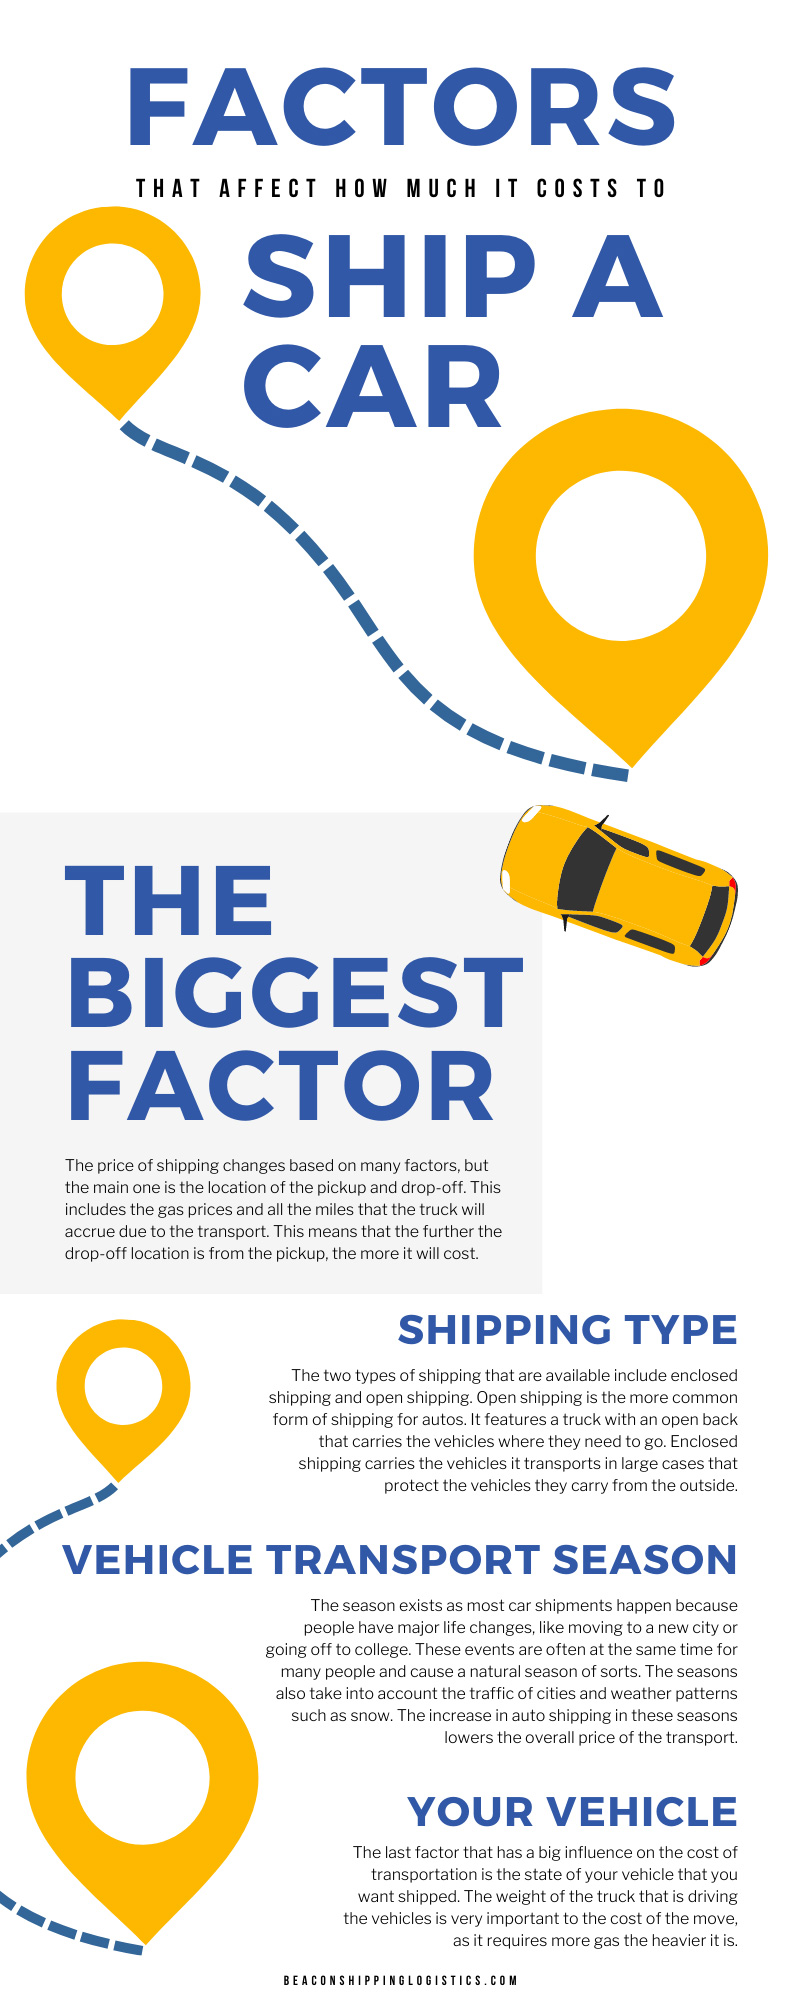 Factors That Affect How Much It Costs To Ship a Car